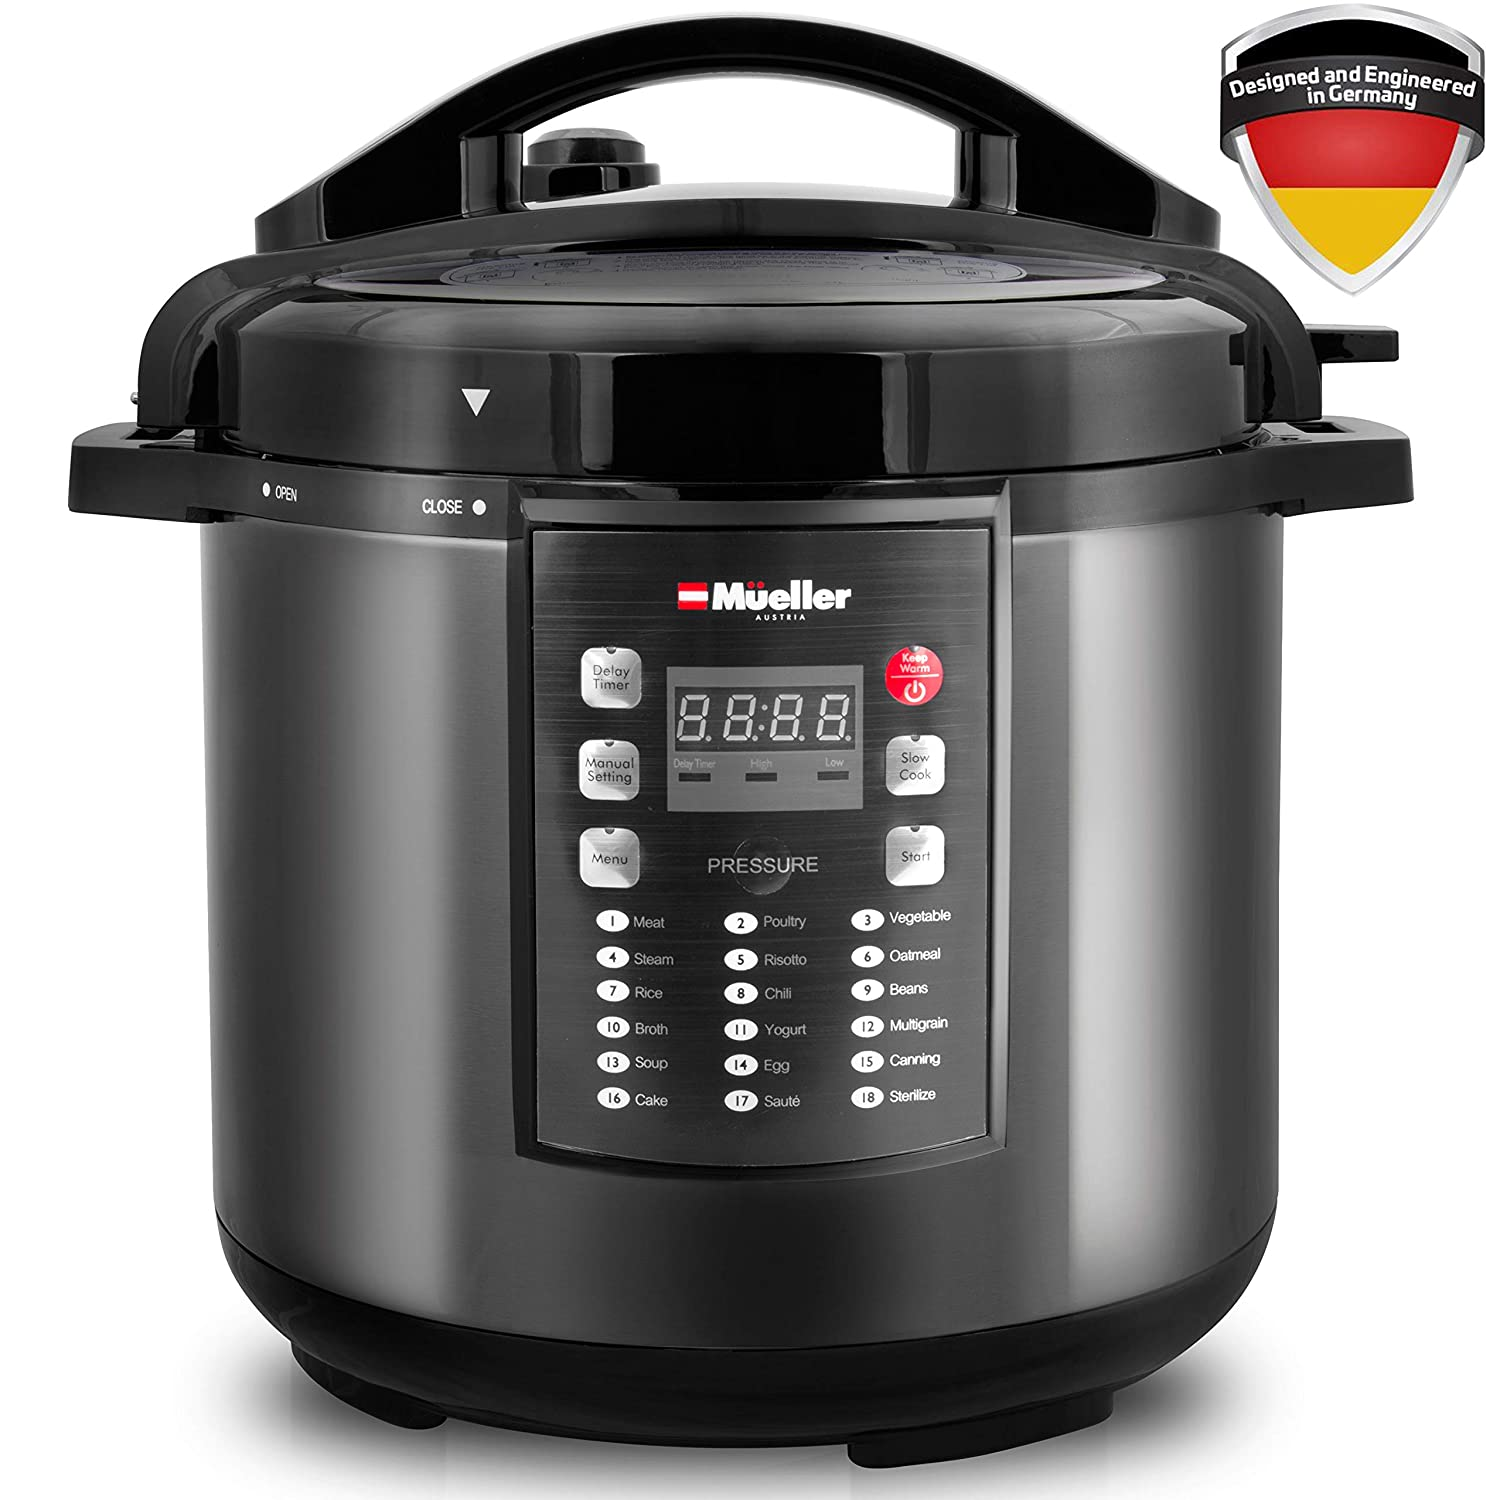 MUELLER Pressure Cooker 10-in-1 Pro Series 19 Program 6Q with German ThermaV Tech, Cook 2 Dishes at Once, BONUS TEMPERED GLASS LID, Saute, Steamer, Slow, Rice, Yogurt, Sterilizer (Graphite)